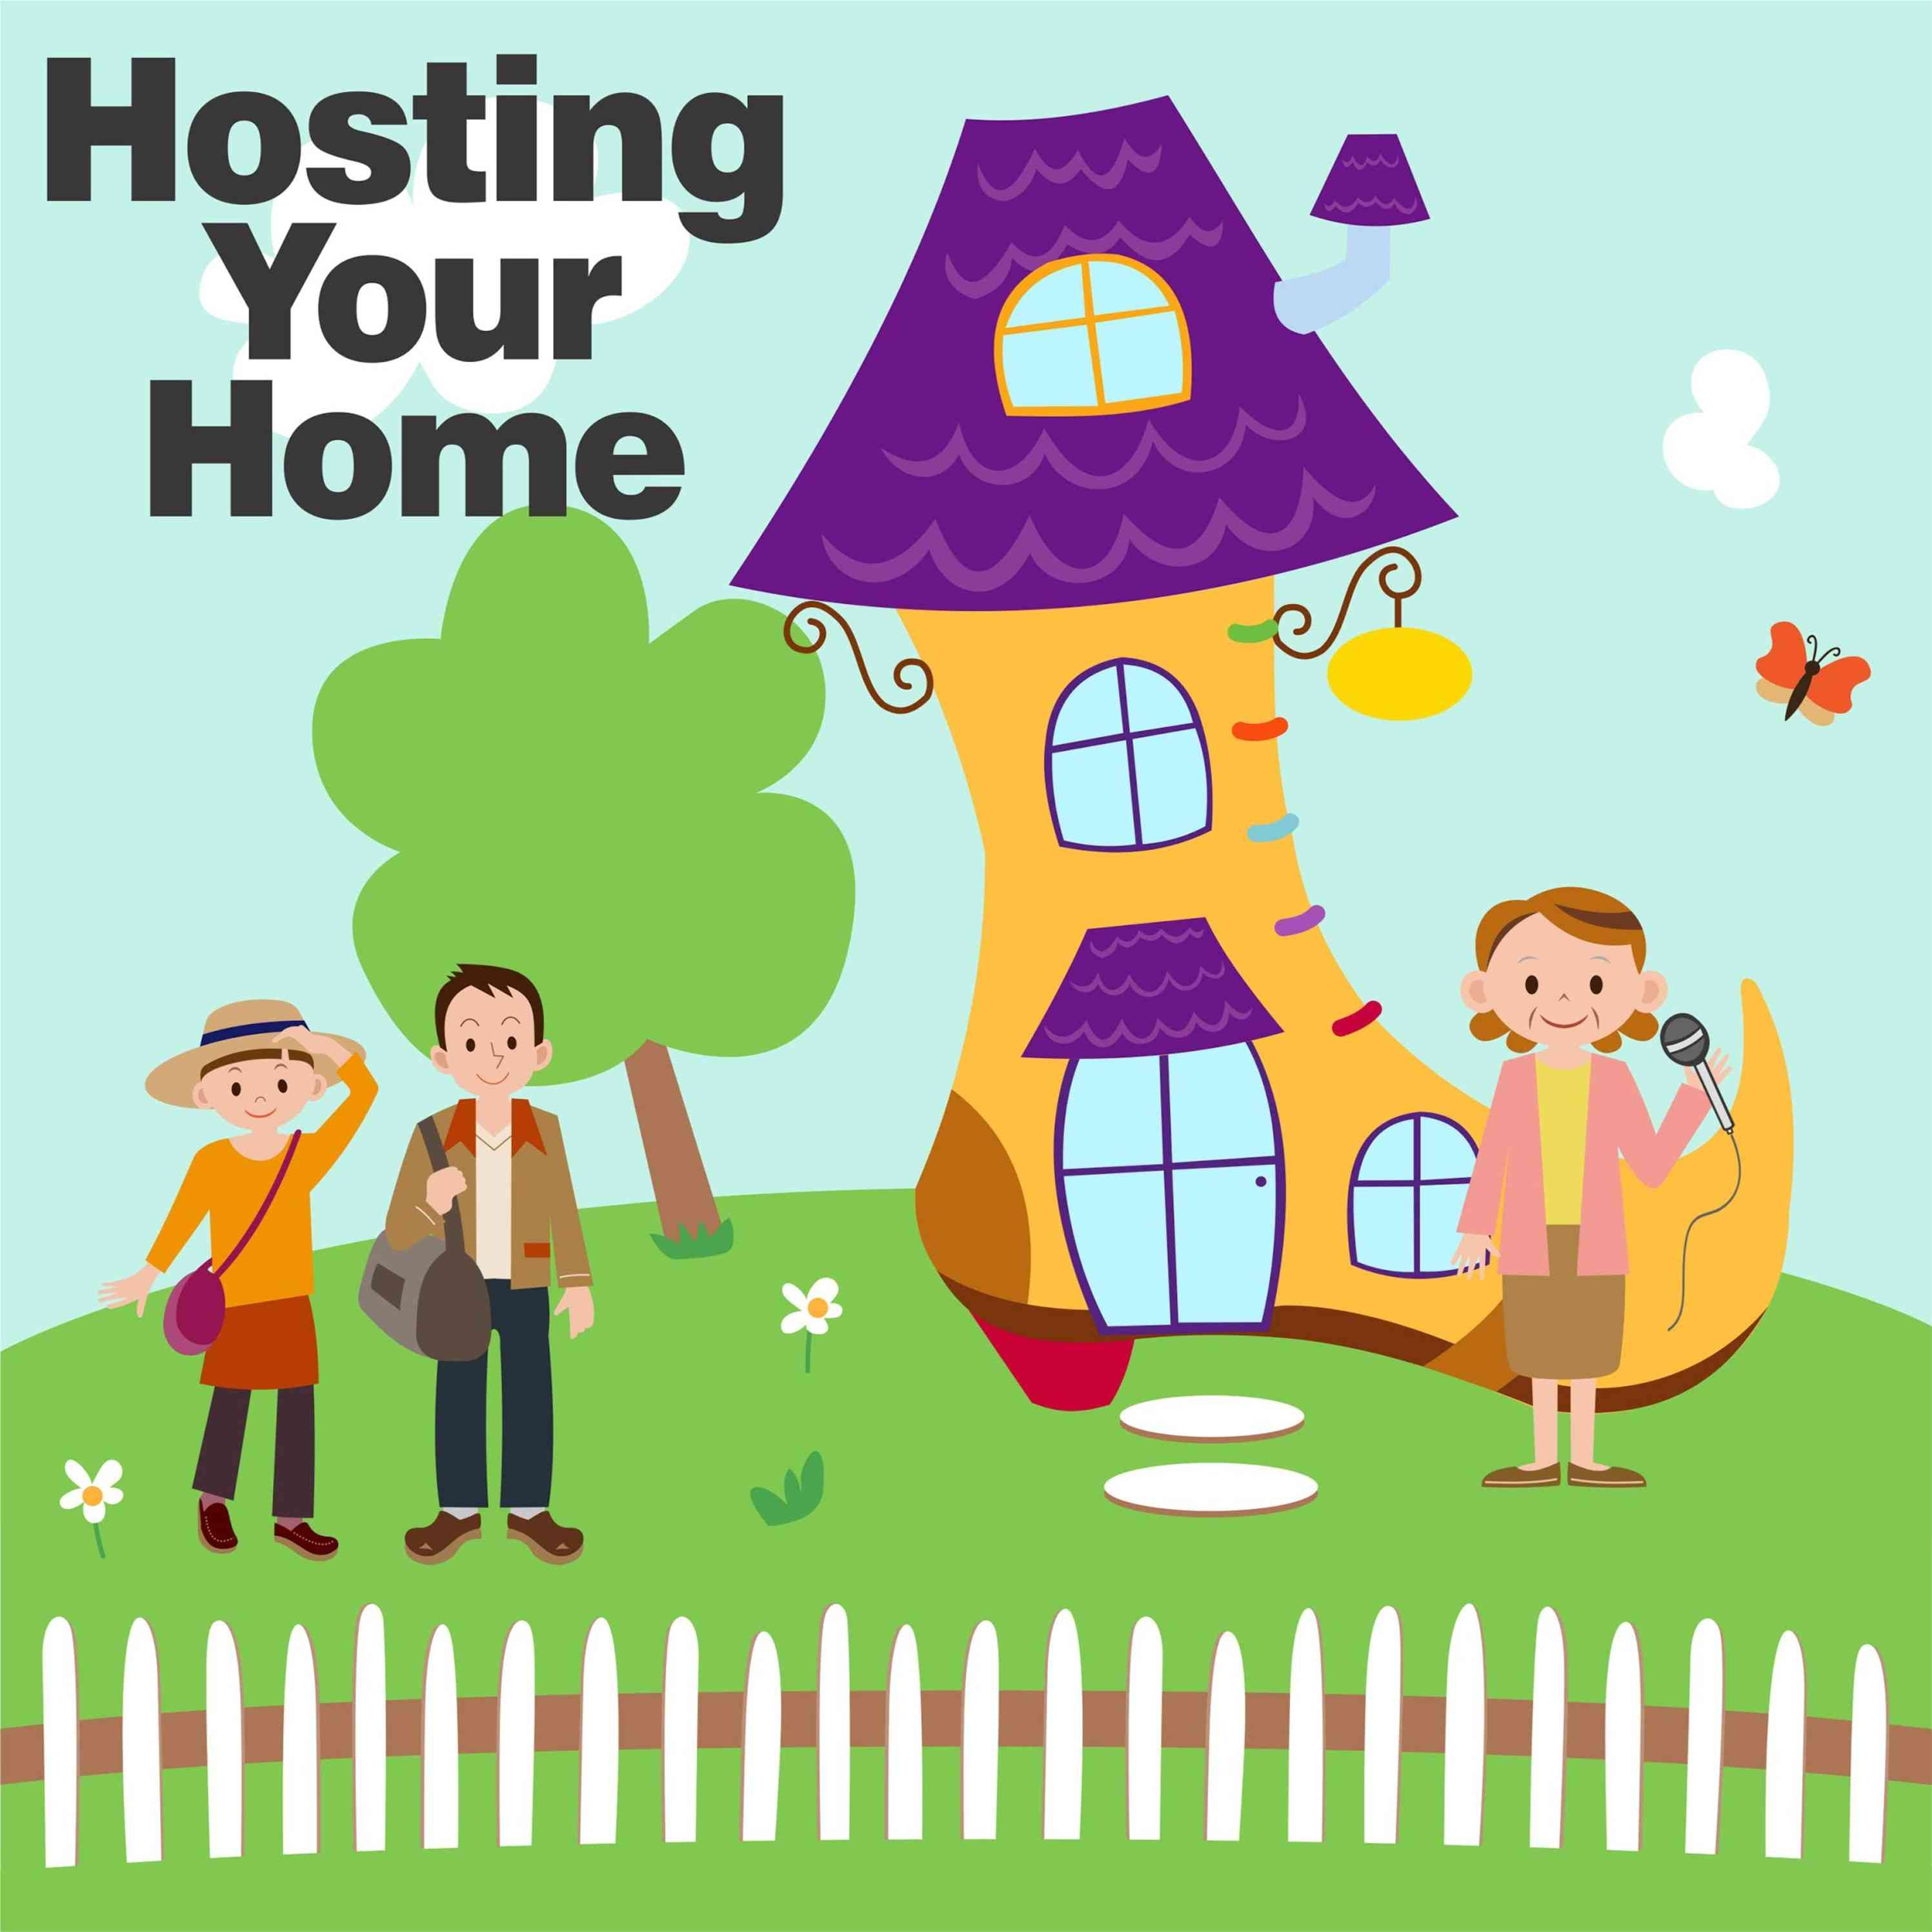 Hosting Your Home - Airbnb host stories show art